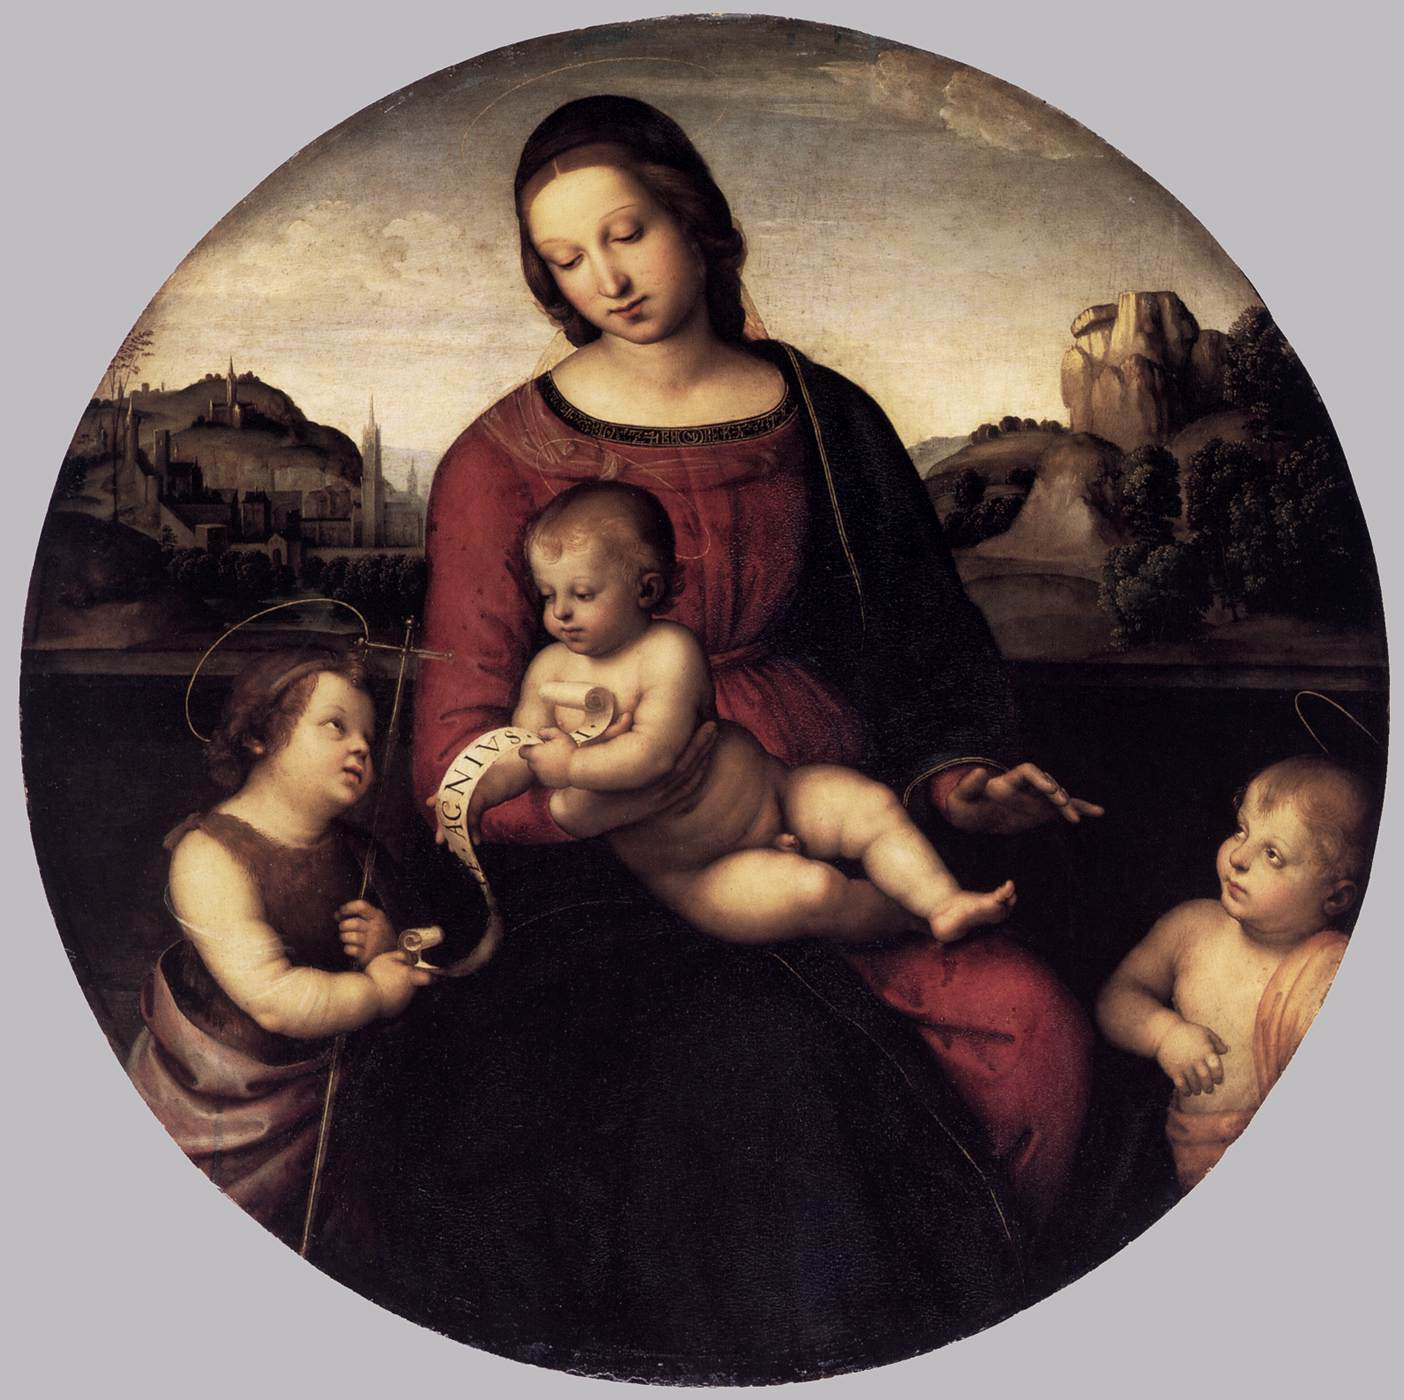 raffaello sanzio famous paintings